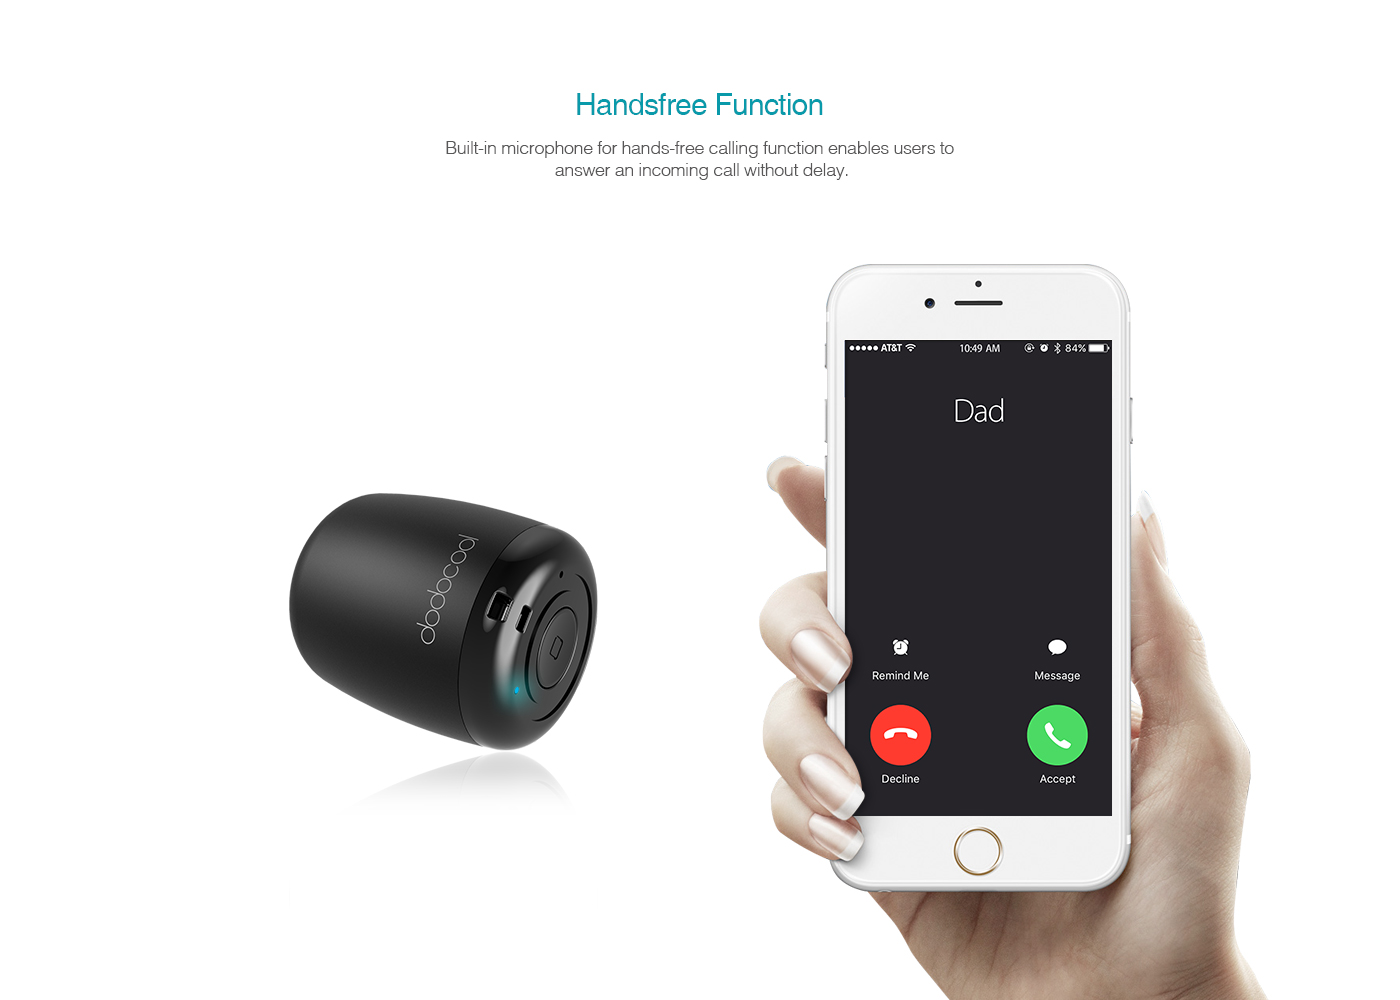 White Wireless Speakers dodocool Small Portable Mini Wireless Speaker with Built-in Mic and Selfie Remote Control Low Harmonic Distortion for iPhone iPad Android Smartphone and More